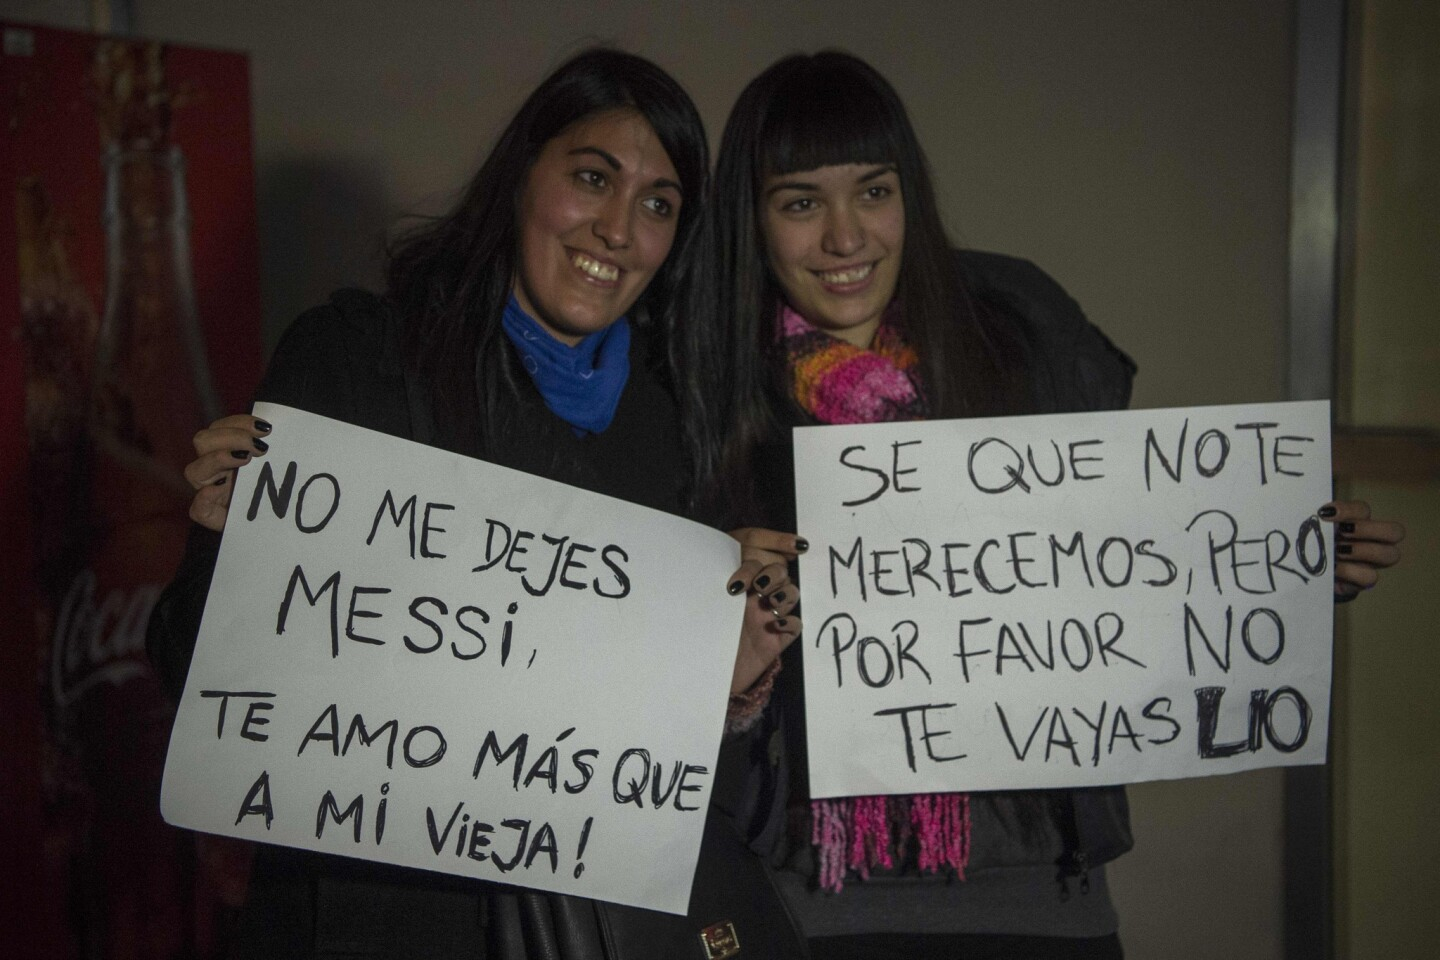 Two young women hold signs asking Lionel Messi no to quit, while waiting for the arrival of Argentina's football team from the Copa America Centenario held in the United States, on June 27, 2016 in Buenos Aires. Argentina lost the final against Chile 4-2 in the penalty shoot-out. Argentines begged Lionel Messi -who tearfully decided to quit the international team after missing a spot-kick in the shootout- not to leave the national team despite its traumatic final. / AFP PHOTO / EITAN ABRAMOVICHEITAN ABRAMOVICH/AFP/Getty Images ** OUTS - ELSENT, FPG, CM - OUTS * NM, PH, VA if sourced by CT, LA or MoD **